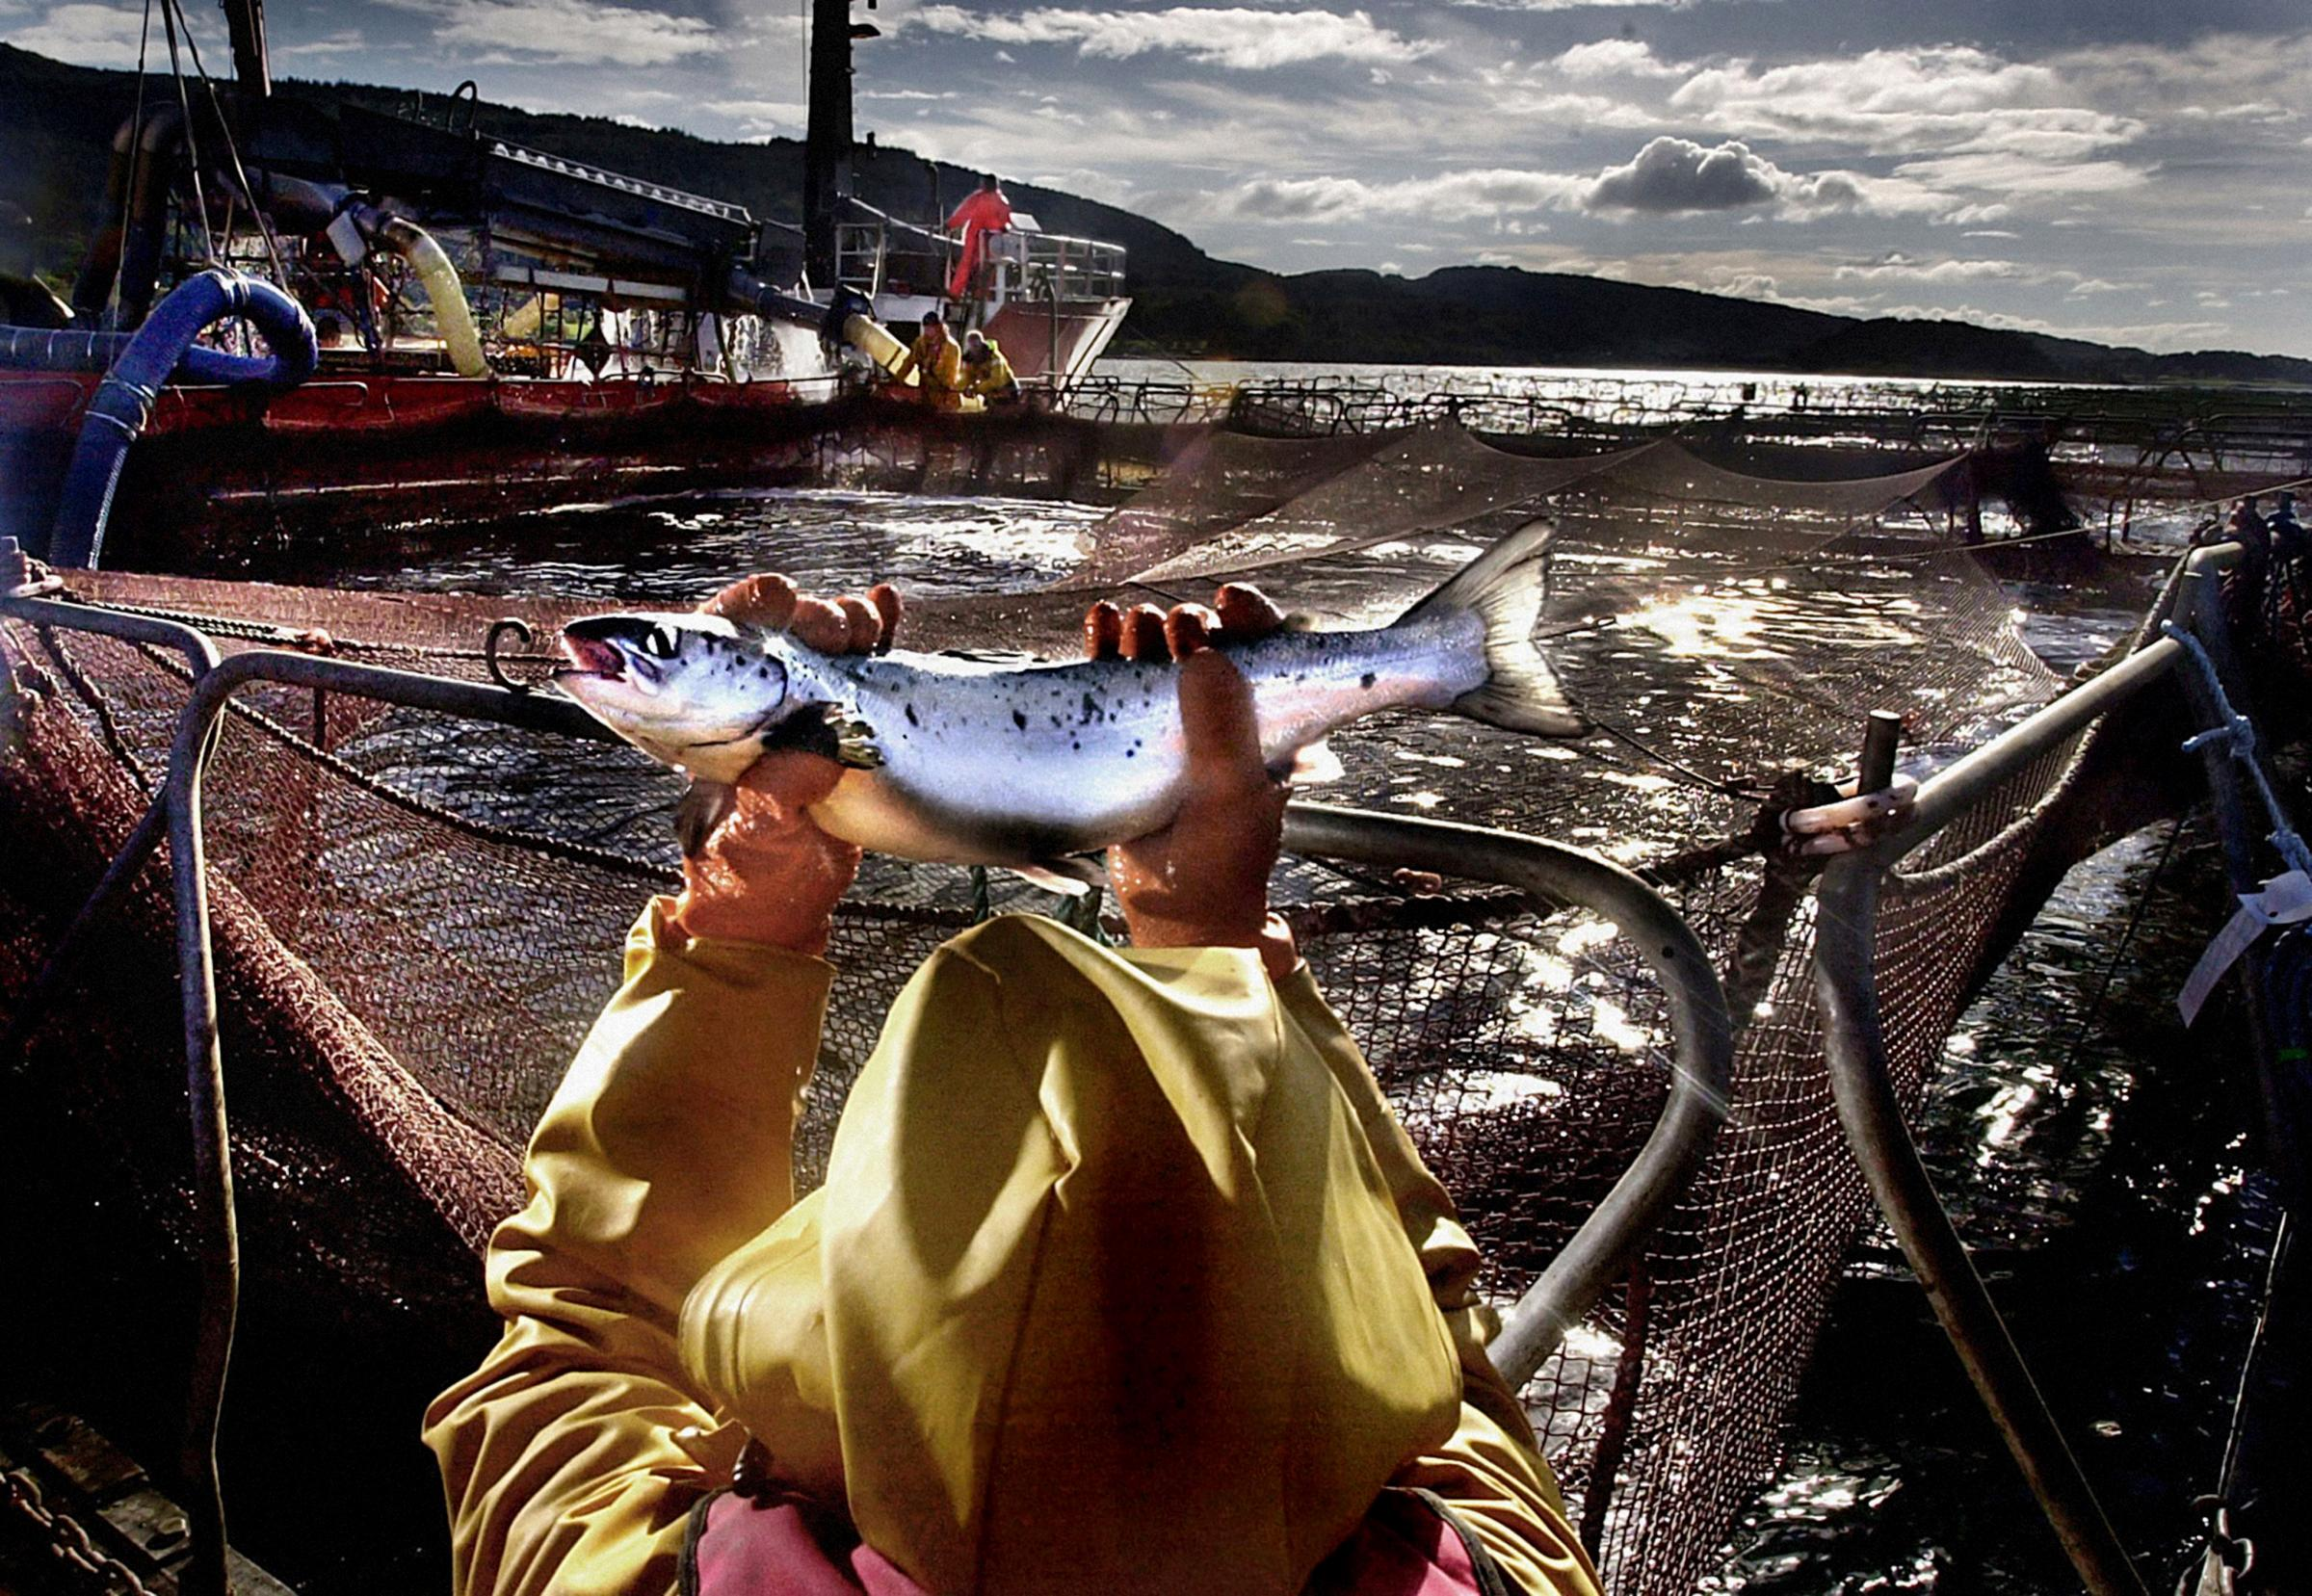 A worker at a salmon farm on Loch Linnhe near Fort William. Outbreaks of sea lice and accusations that farmed salmon are artificially coloured and may contain PCBs and dioxins, have put the fish farm industry under severe pressure.